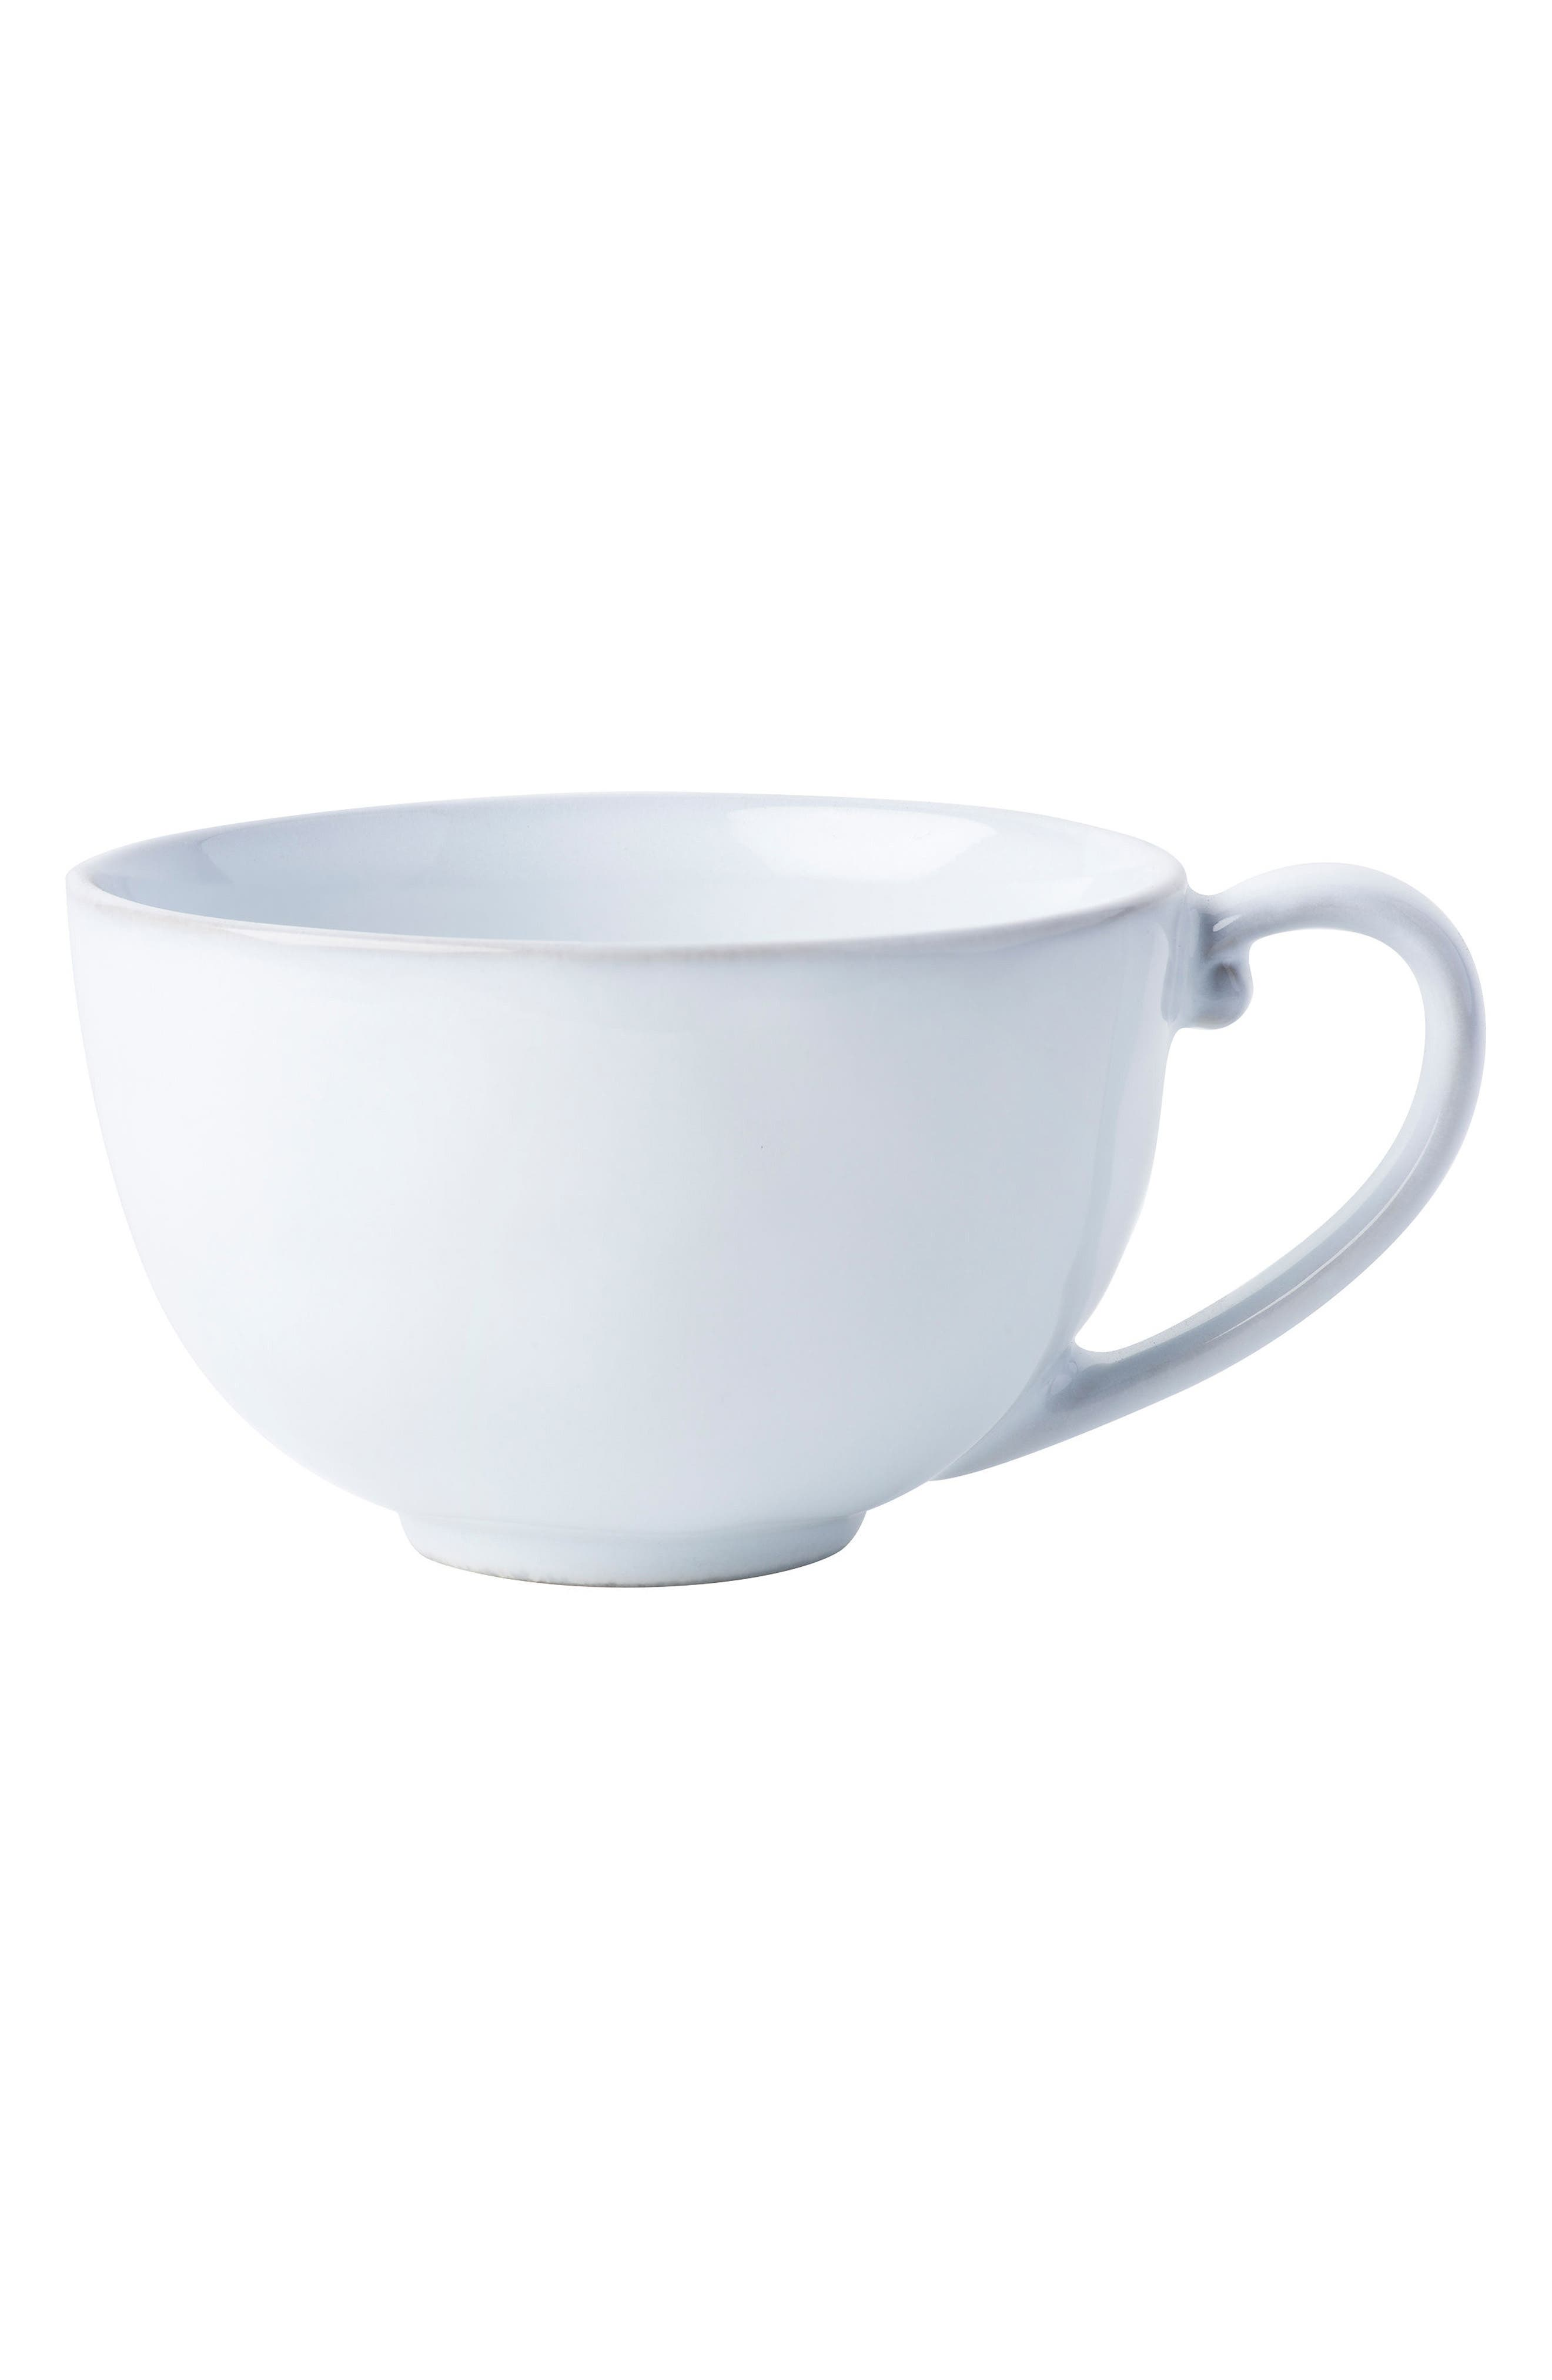 Quotidien White Truffle Ceramic Coffee Cup,                         Main,                         color, WHITE TRUFFLE